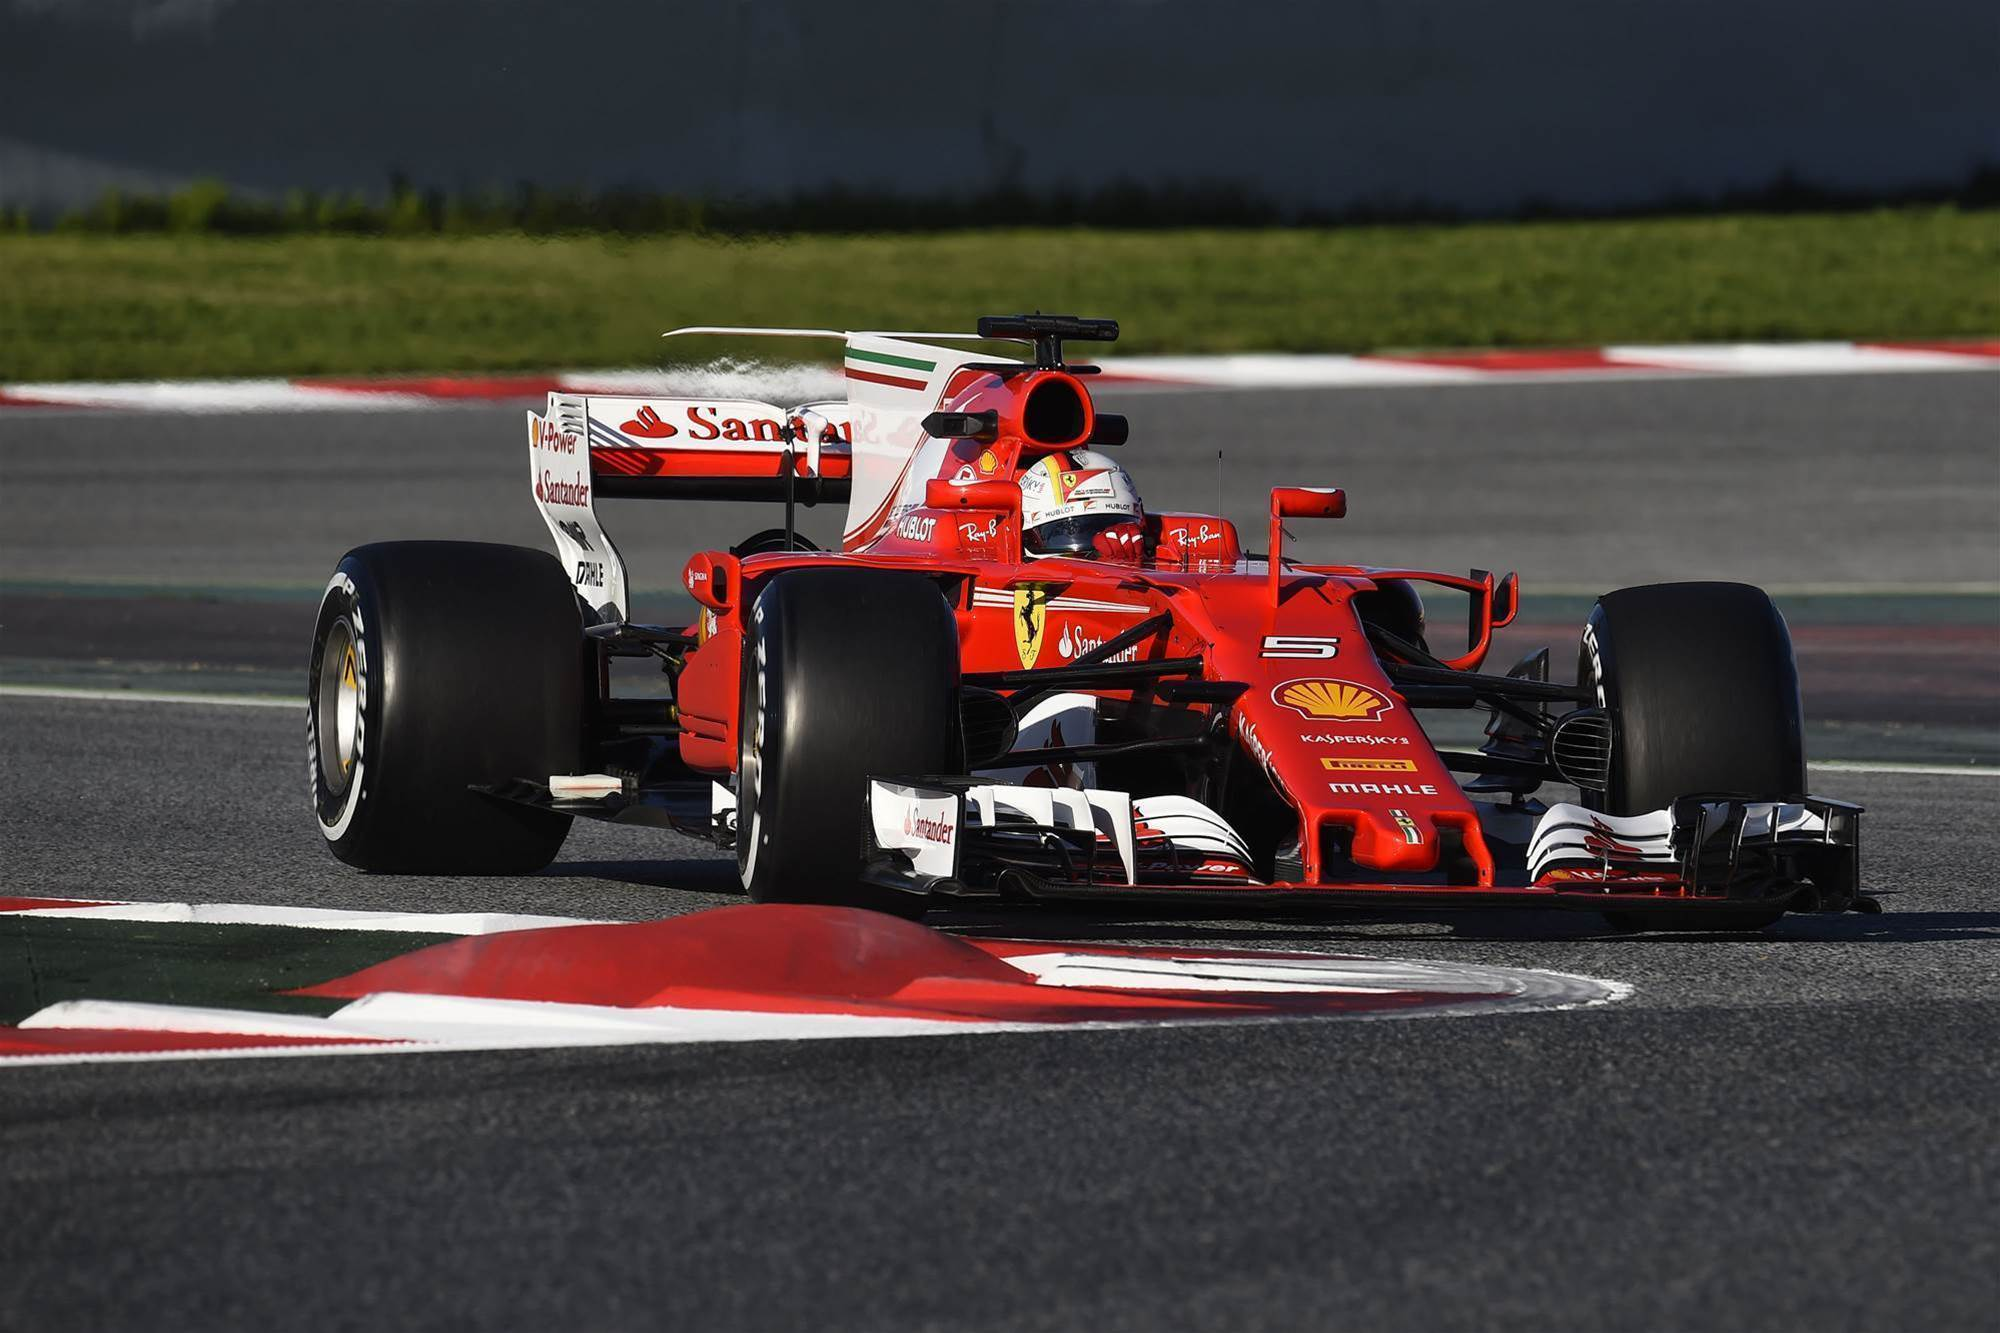 Ferrari sets the pace in F1 testing